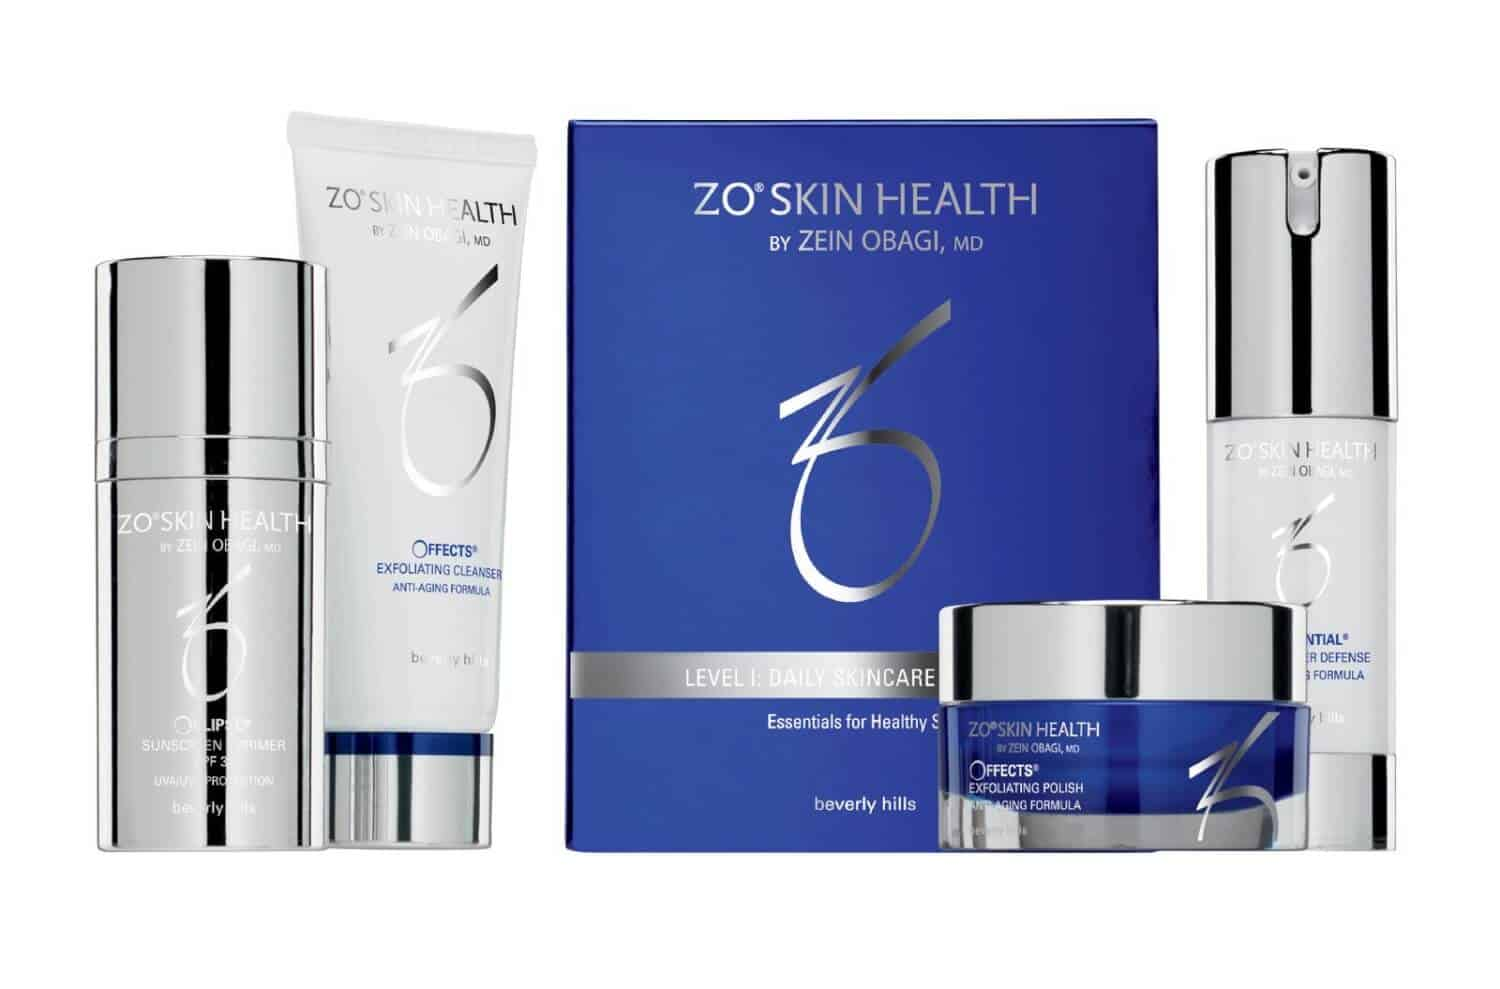 Zo Skin Health Phase I Daily Skincare Program Beauty Mailbox